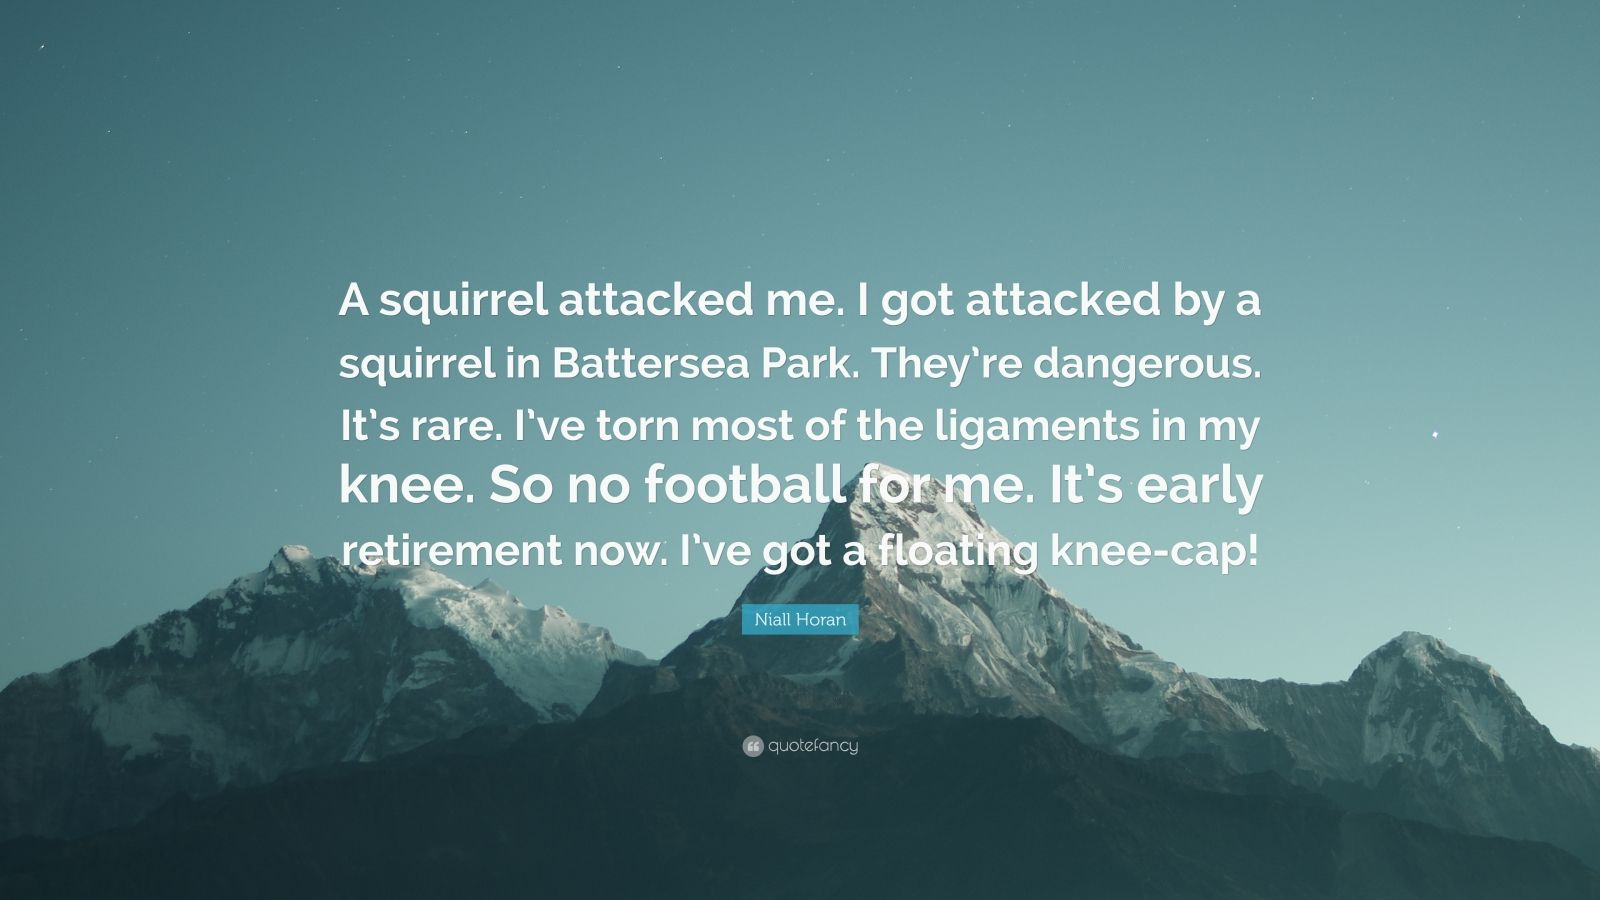 "Niall Horan Quote: ""A squirrel attacked me. I got attacked by a squirrel in Battersea Park. They're dangerous. It's rare. I've torn most of the ligaments in my knee. So no football for me. It's early retirement now. I've got a floating knee-cap!"""